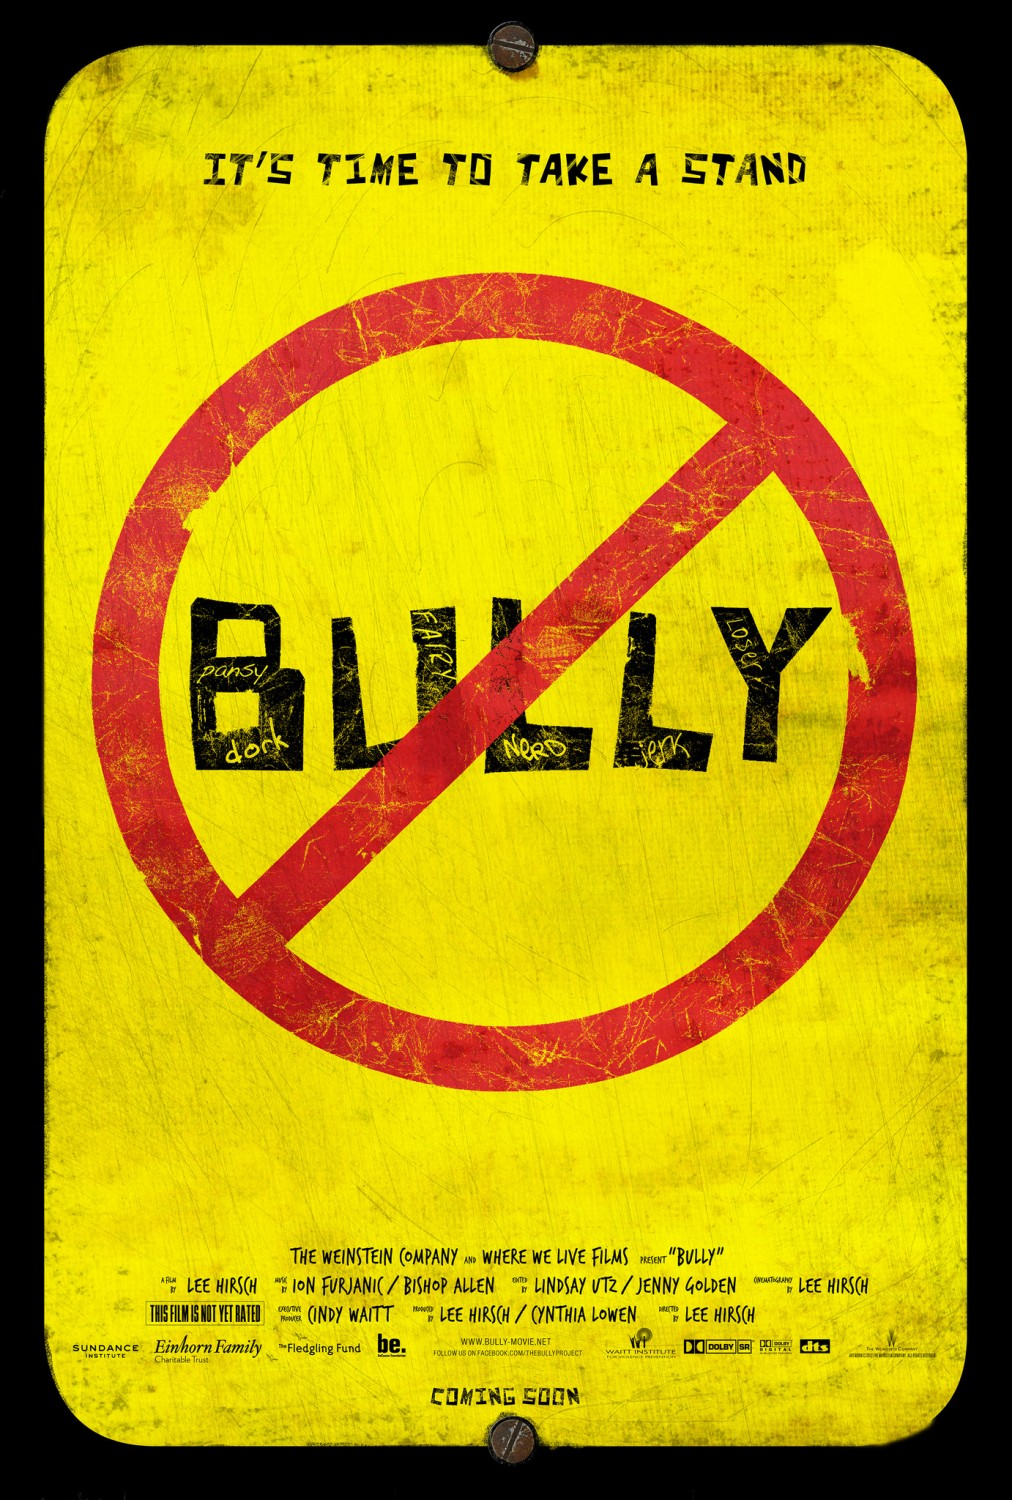 Dennis Willis talks about 'Bully' on KKSF – 3/16/12